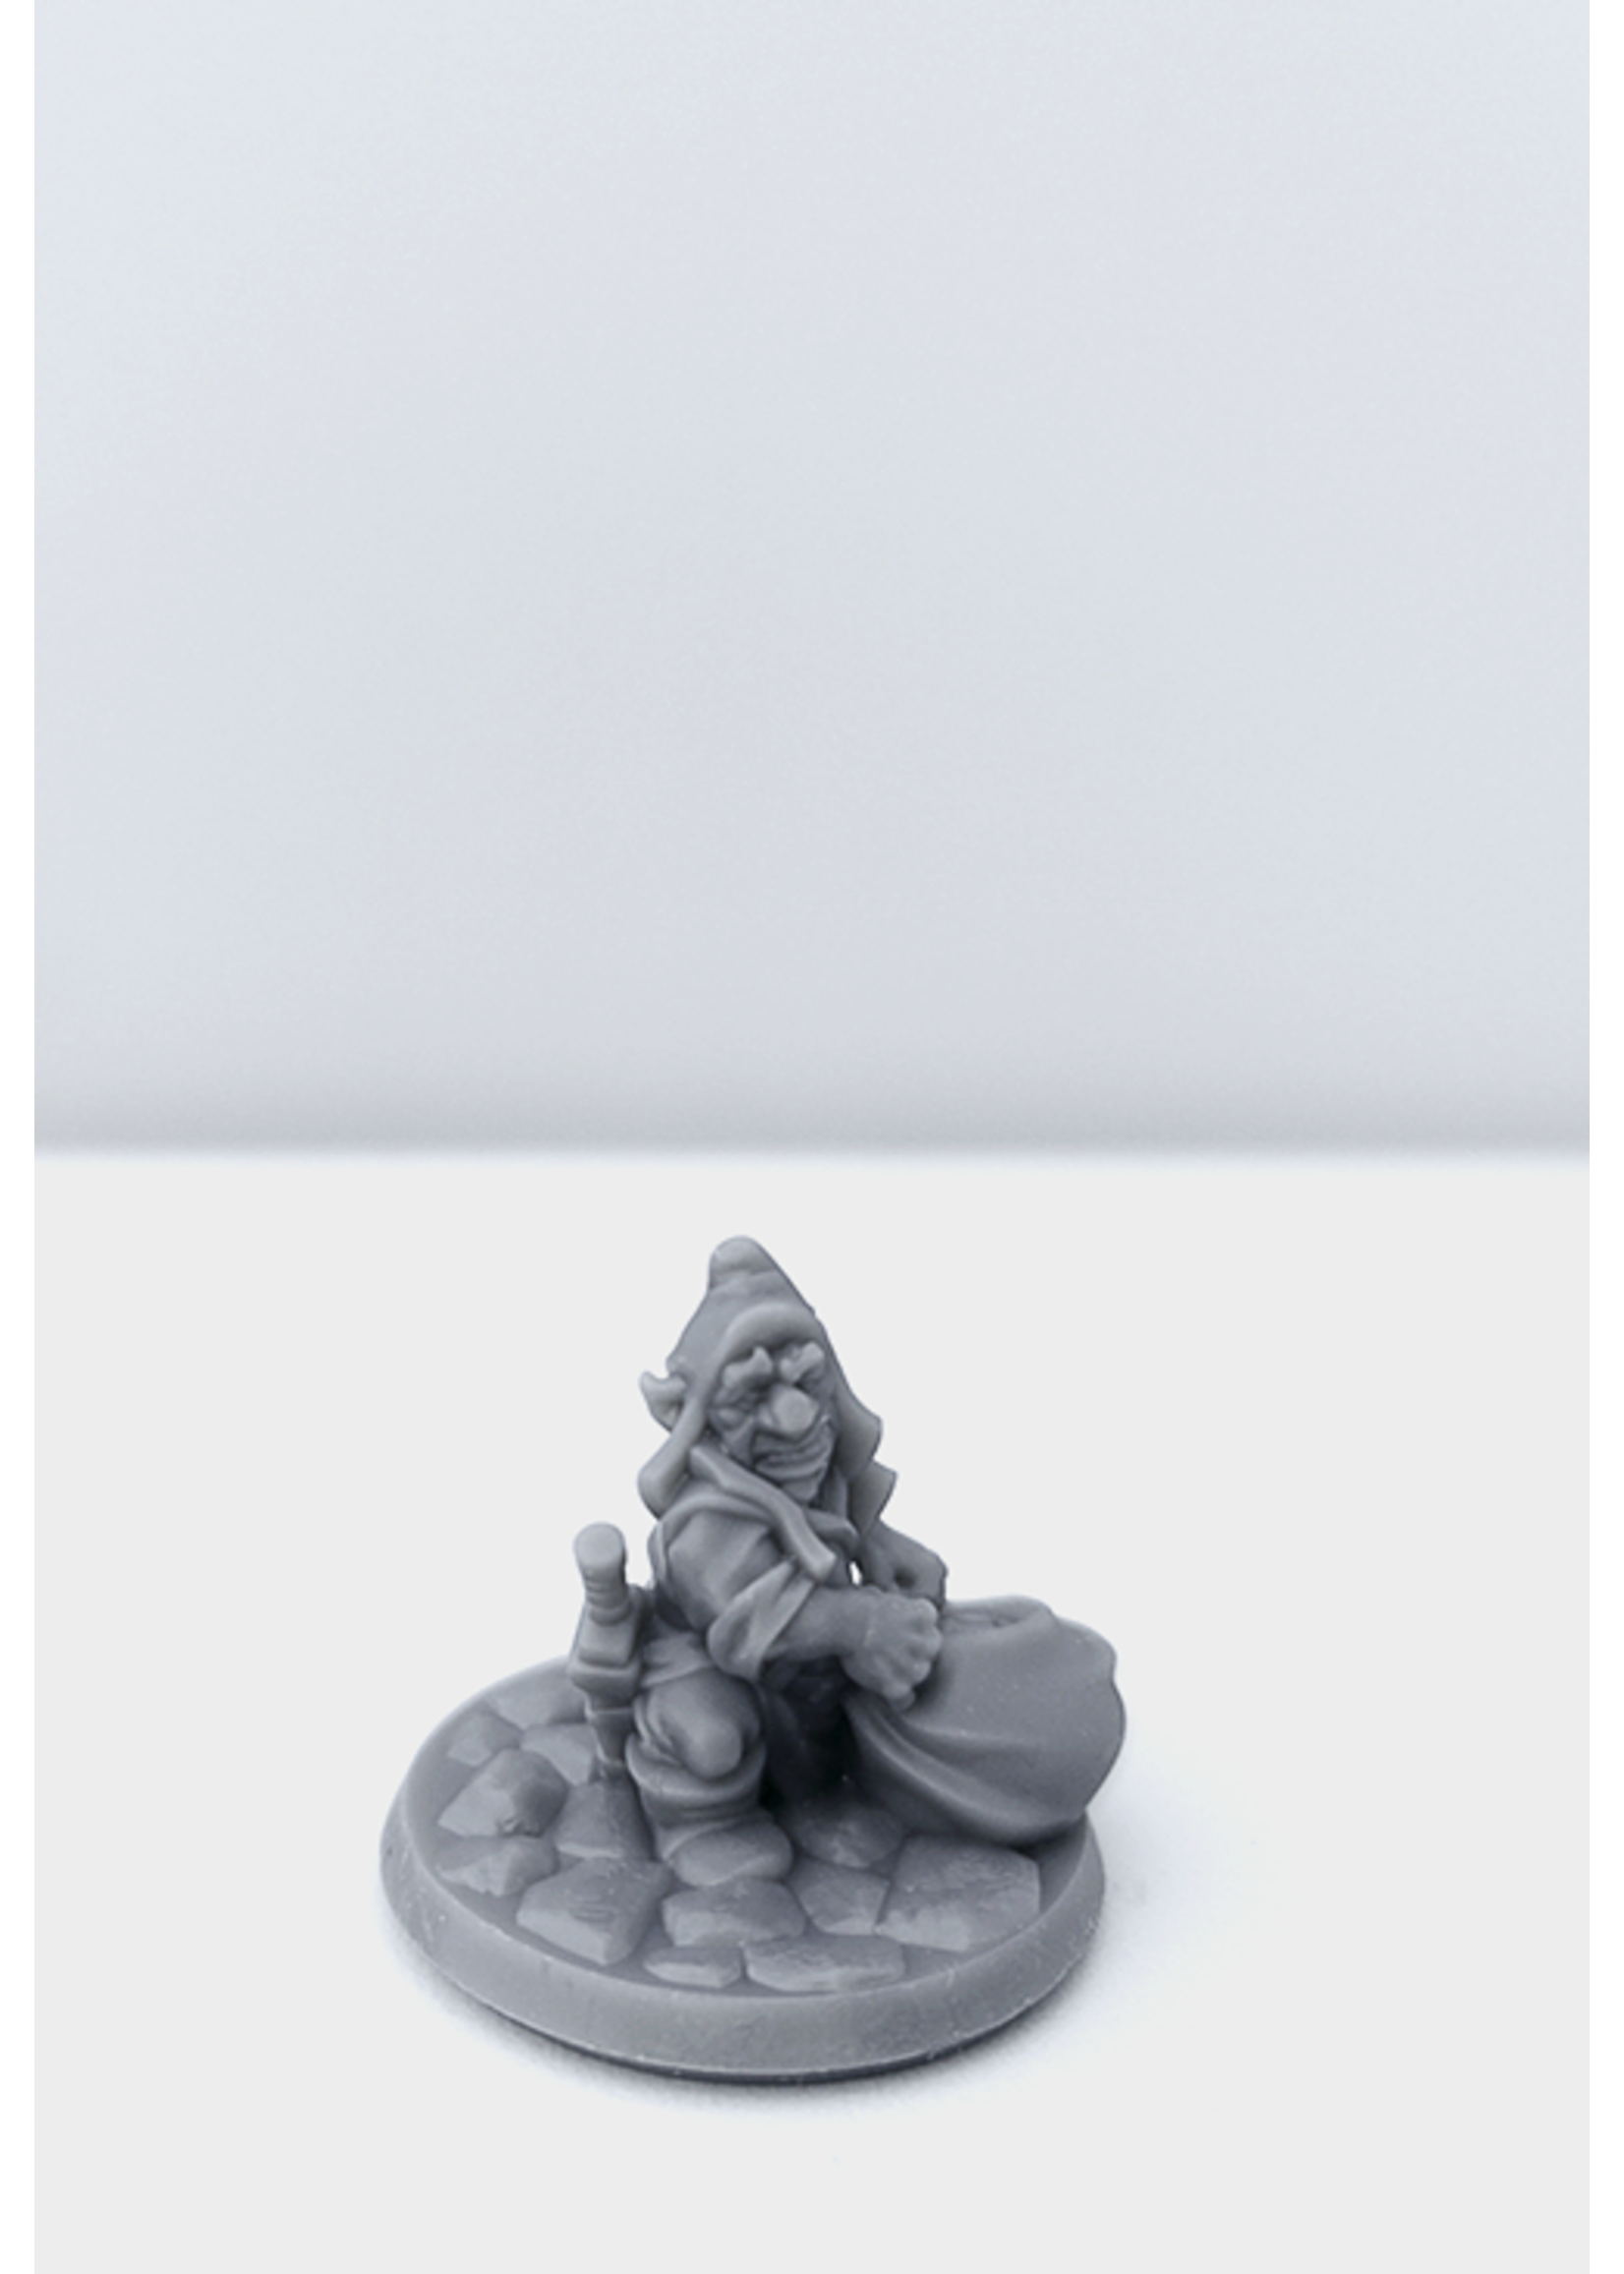 3D Printed Miniature - Gnome Male 01 - Dungeons & Dragons - Hero of the Realm KS